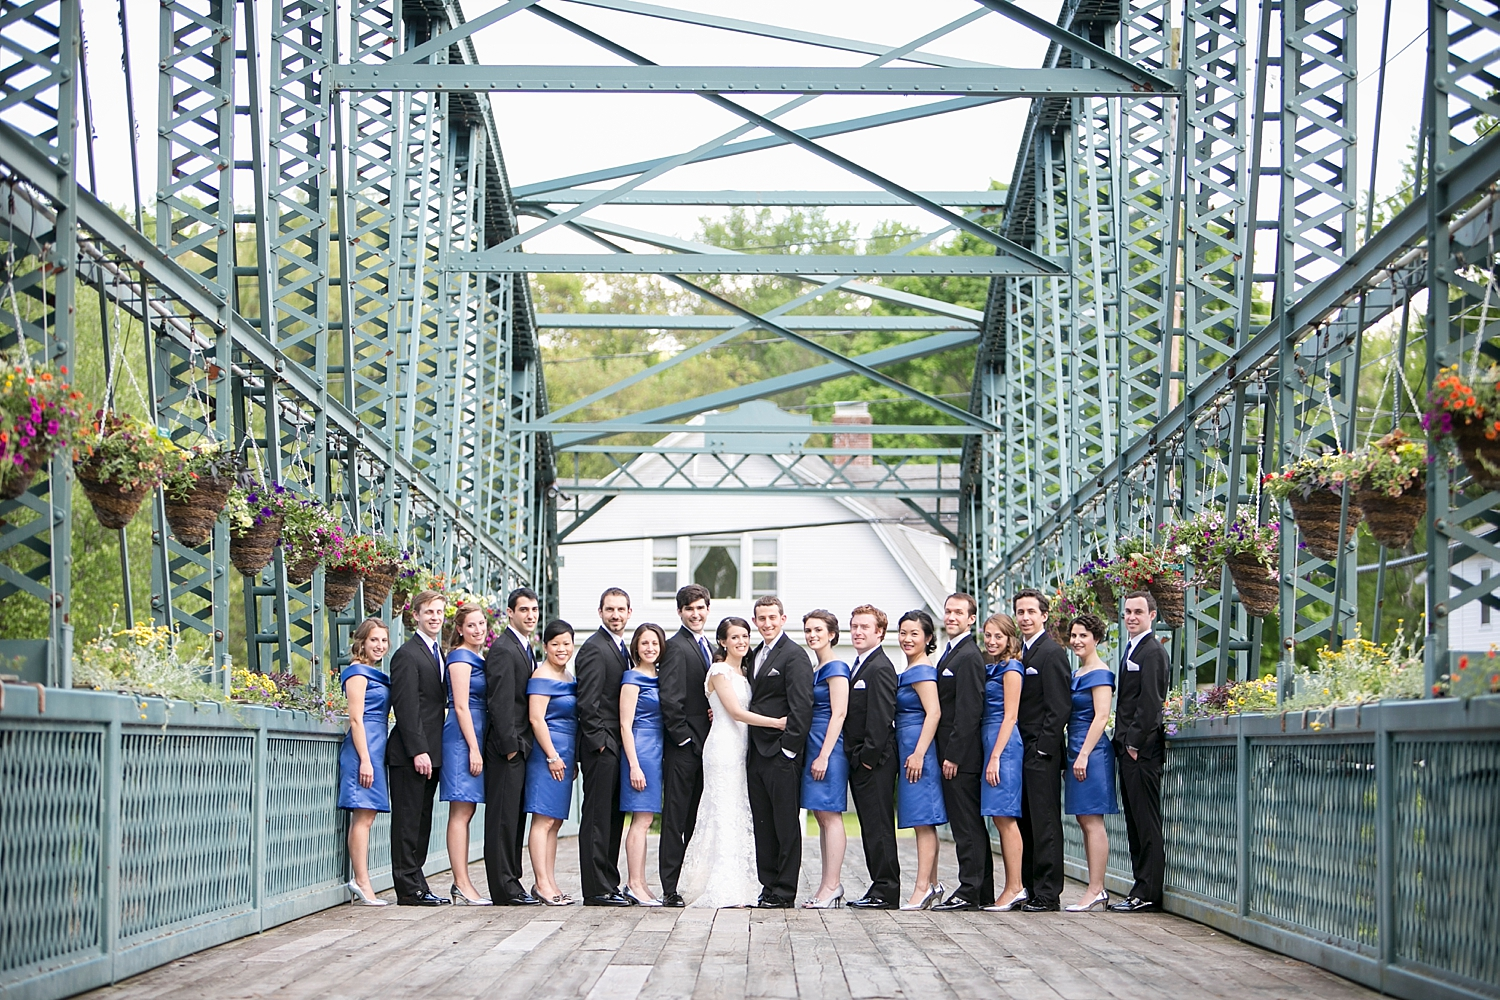 Riverview-Connecticut-Wedding-Party-Portrait-Flower-Bridge